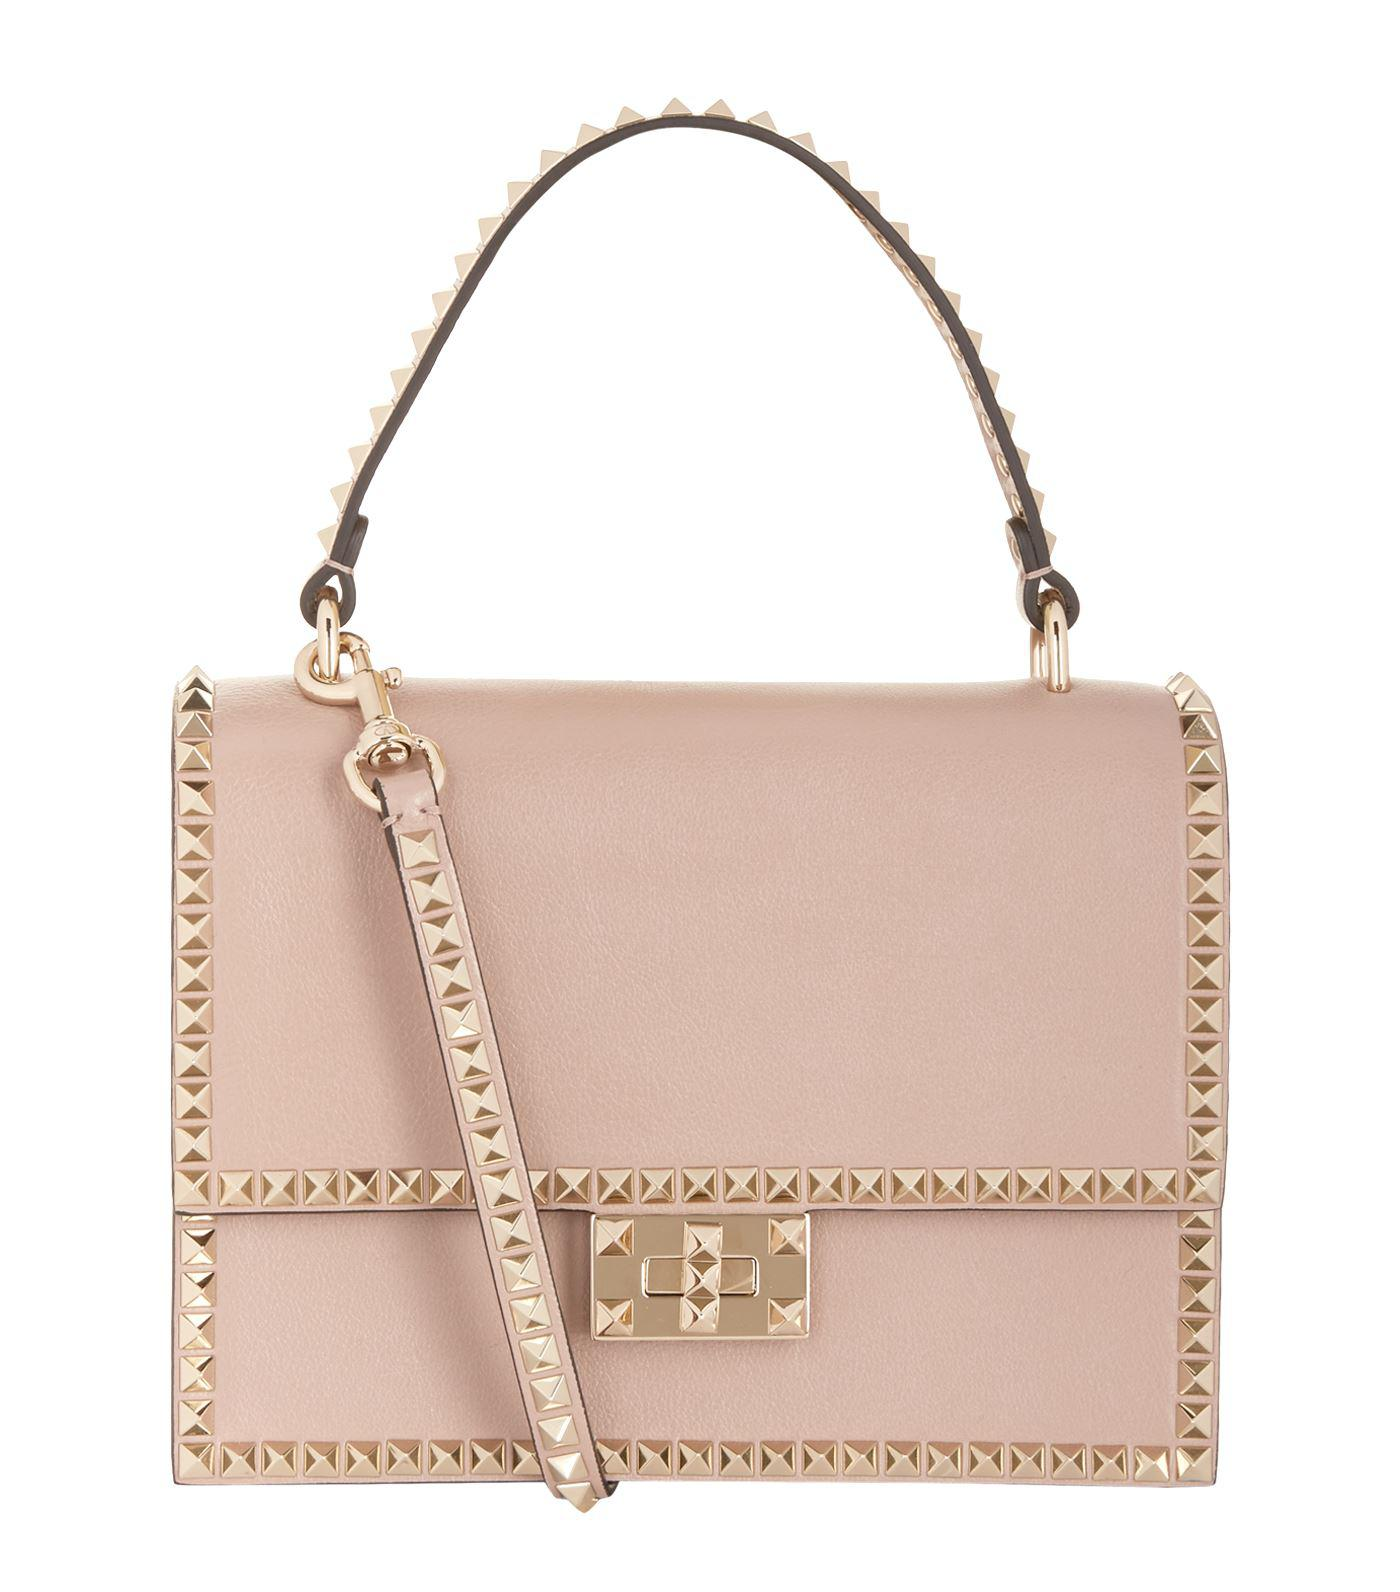 89e4b605eed Valentino Leather Rockstud No Limit Shoulder Bag in Pink - Lyst